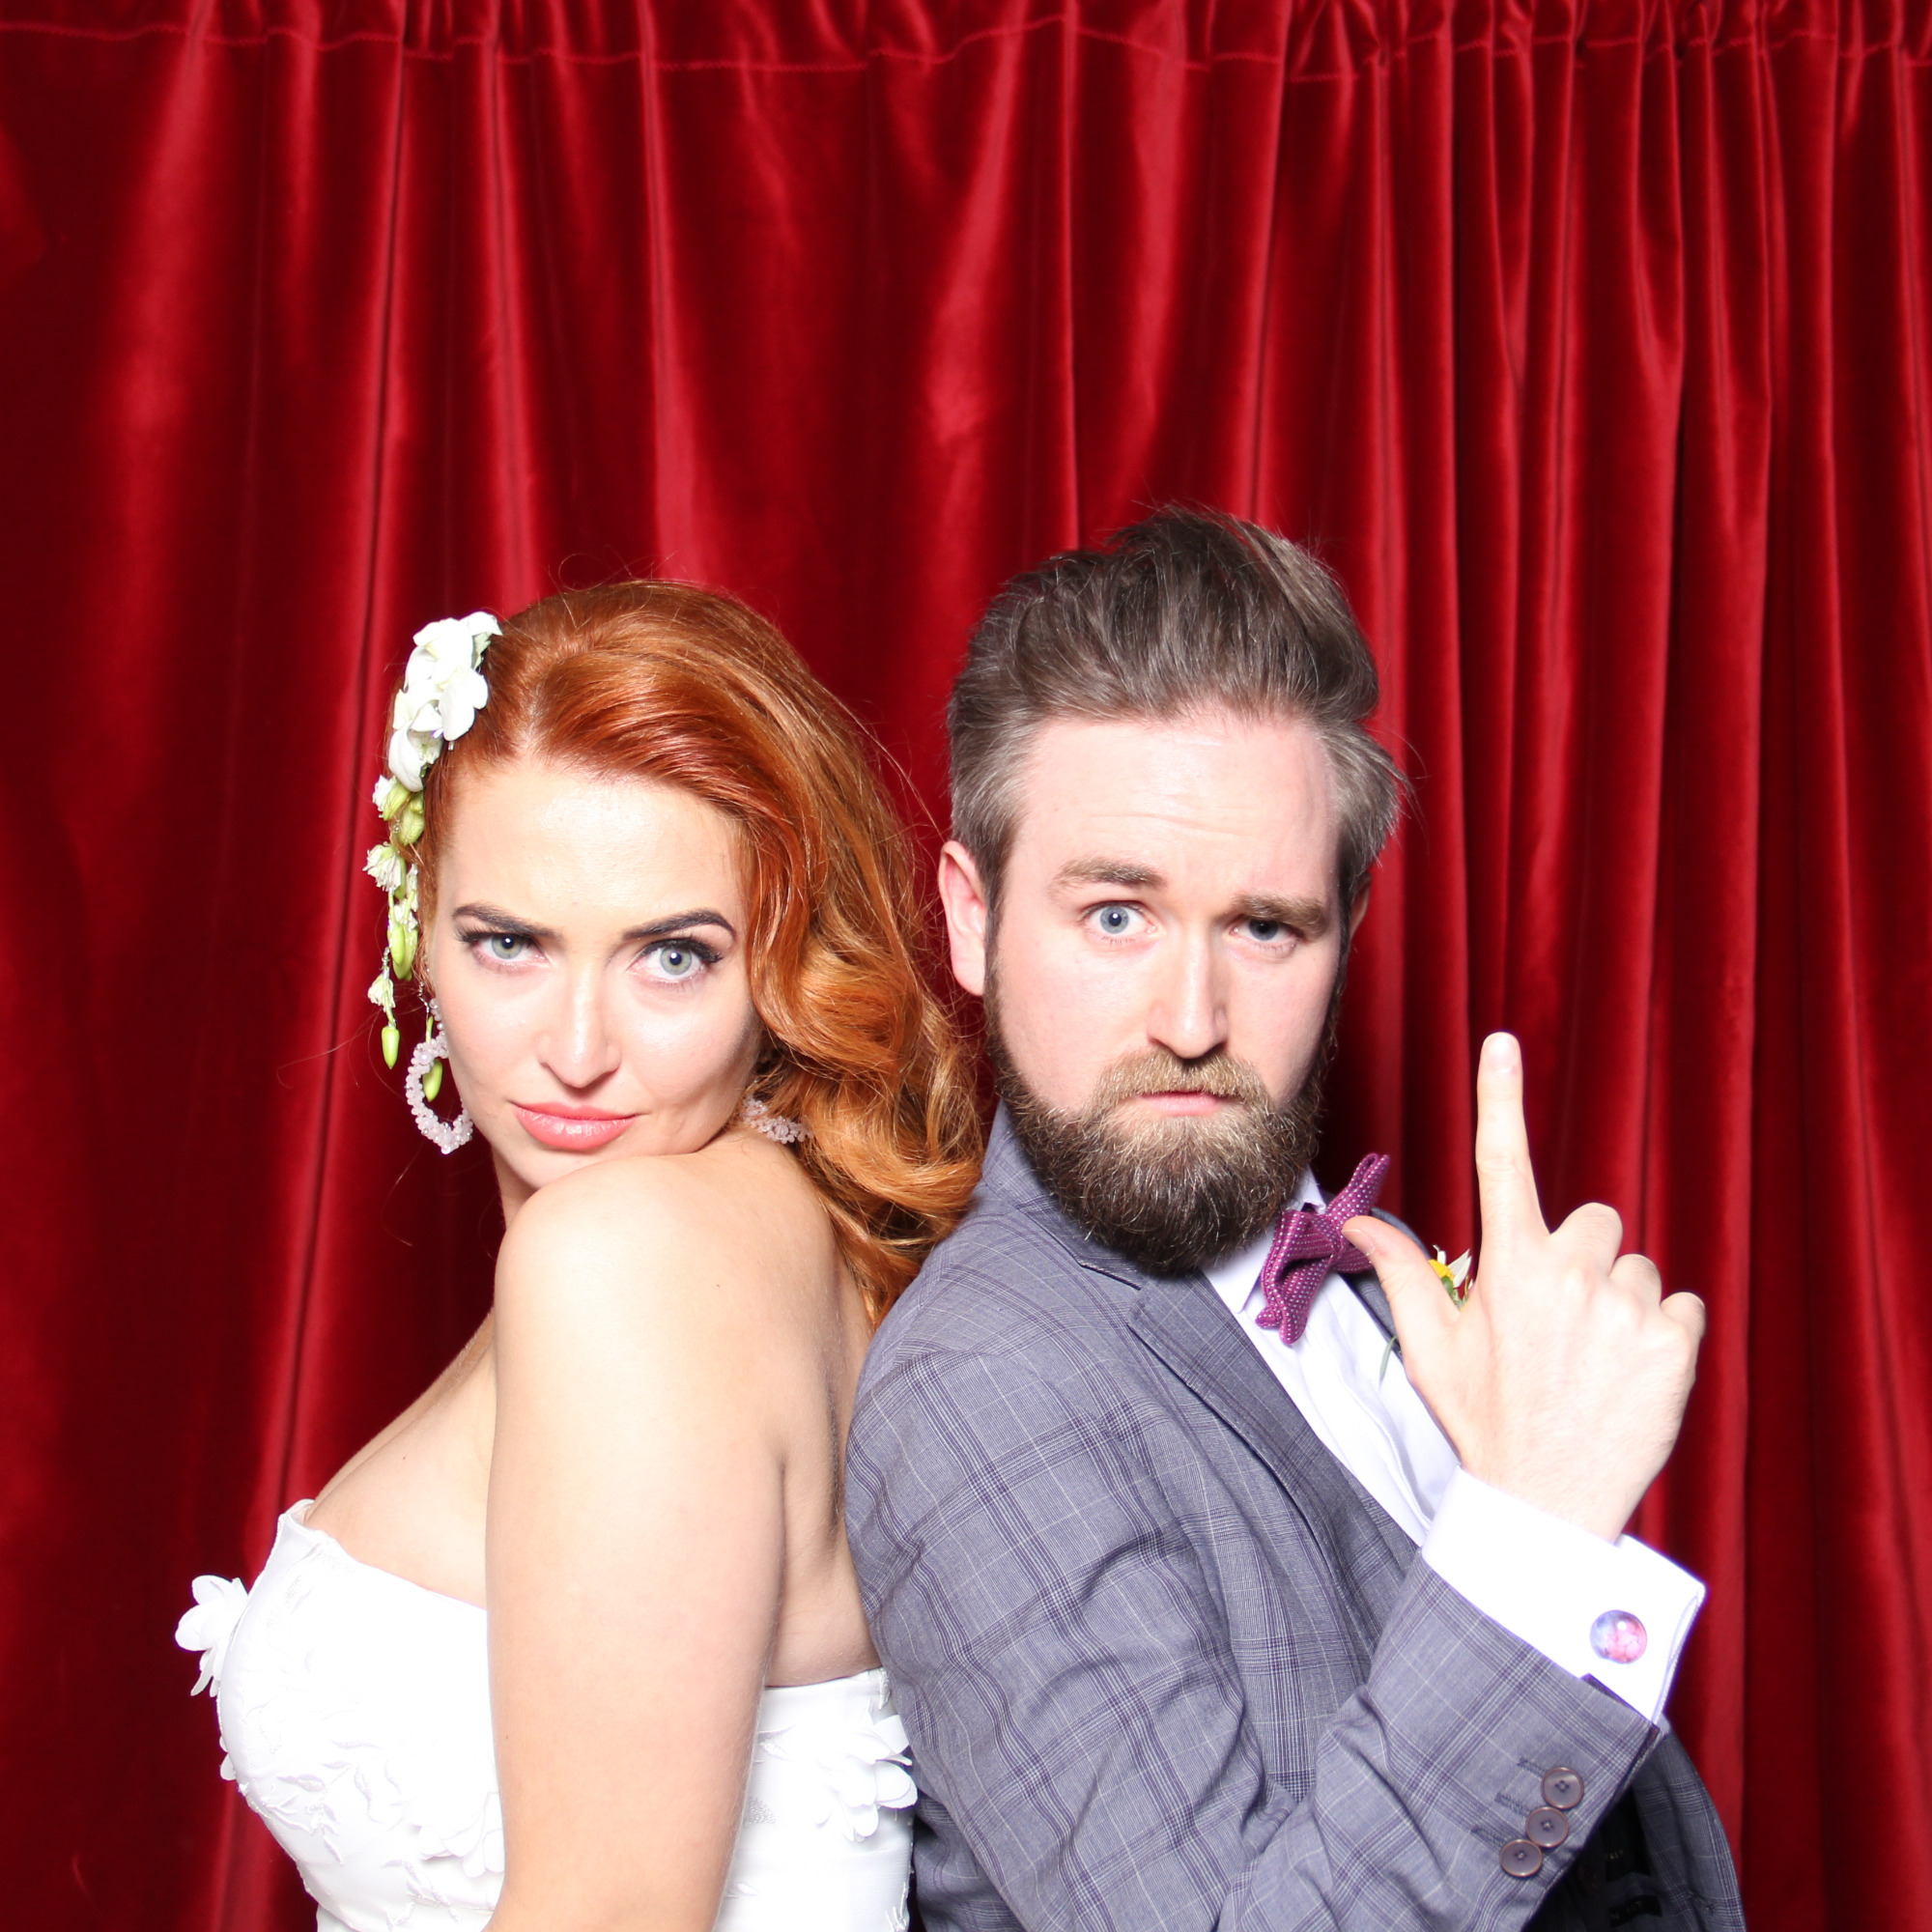 bygone wedding photo booth hire glasgow